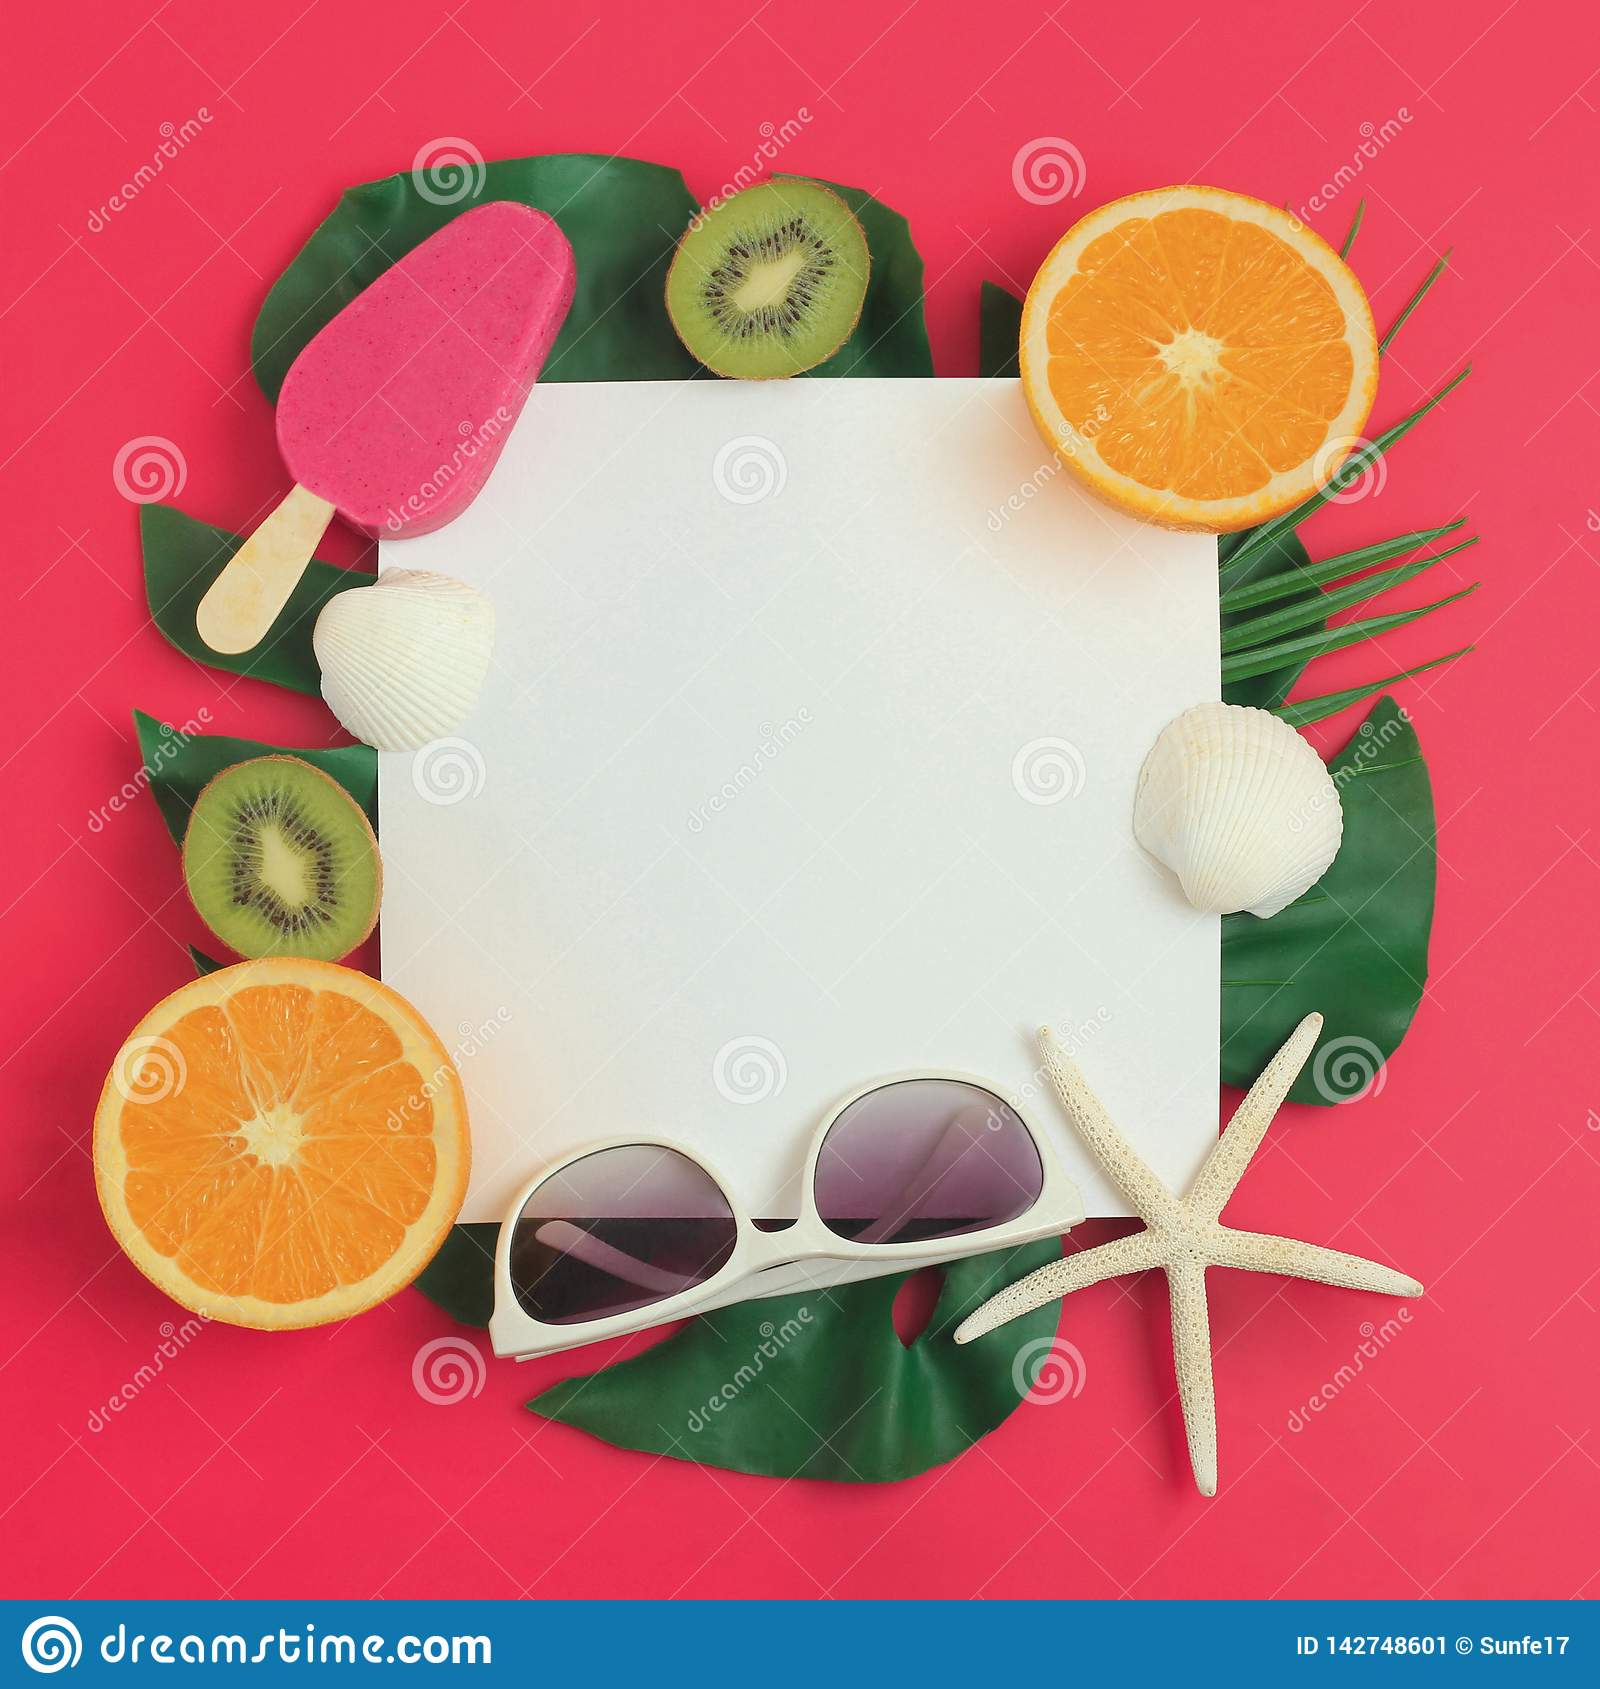 Summer vacation background with ice cream, palm leaves, fruits, sunglasses and seashells